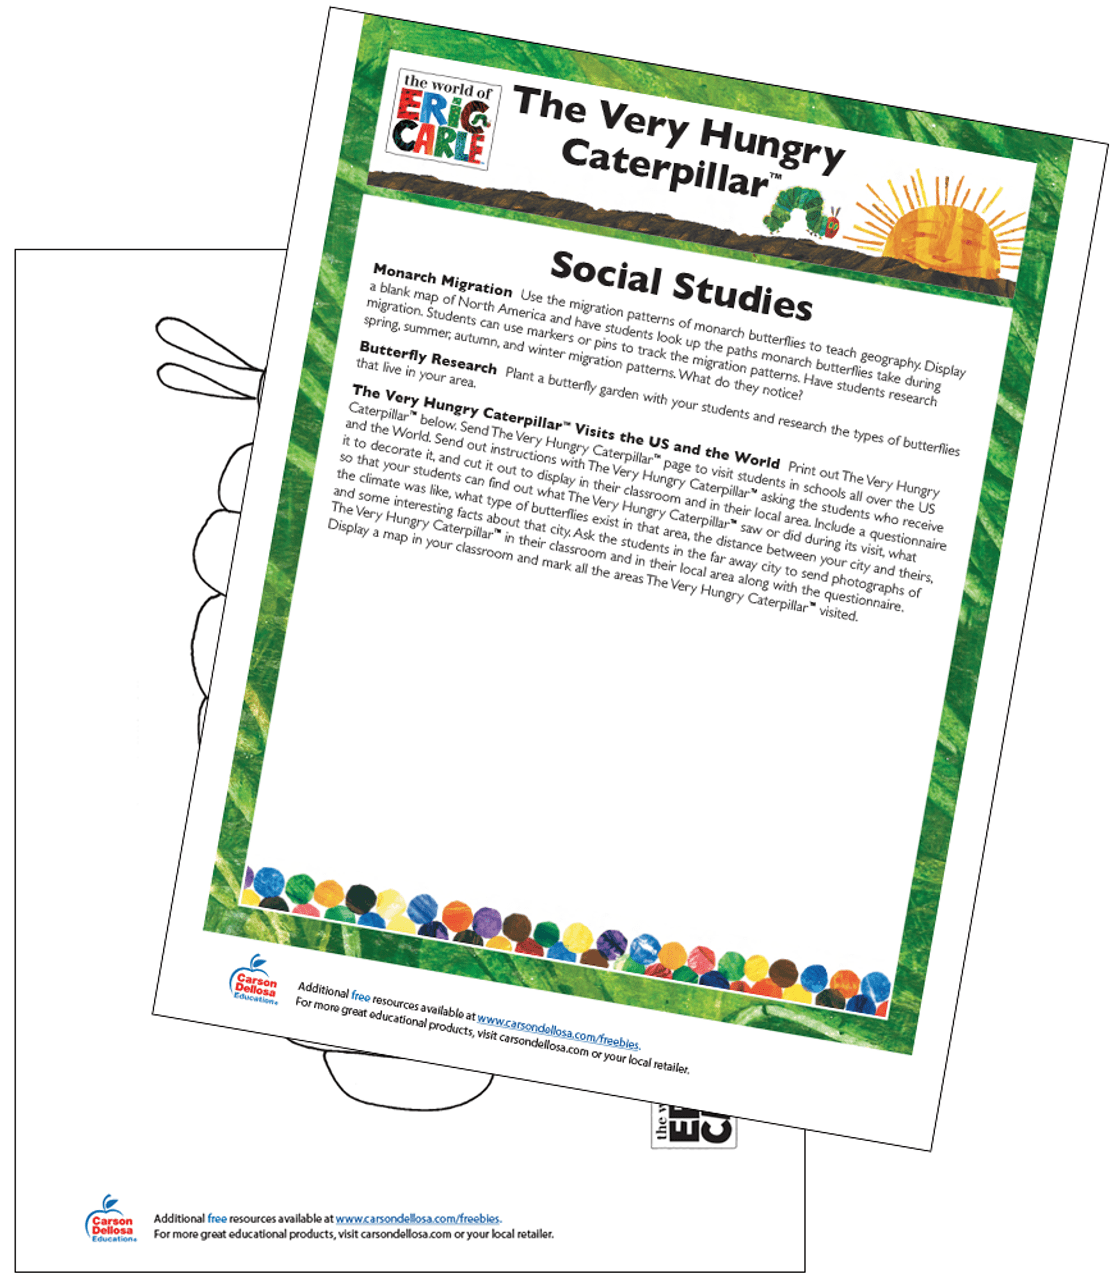 hight resolution of The Very Hungry Caterpillar Social Studies Activity Free Printable   Carson  Dellosa